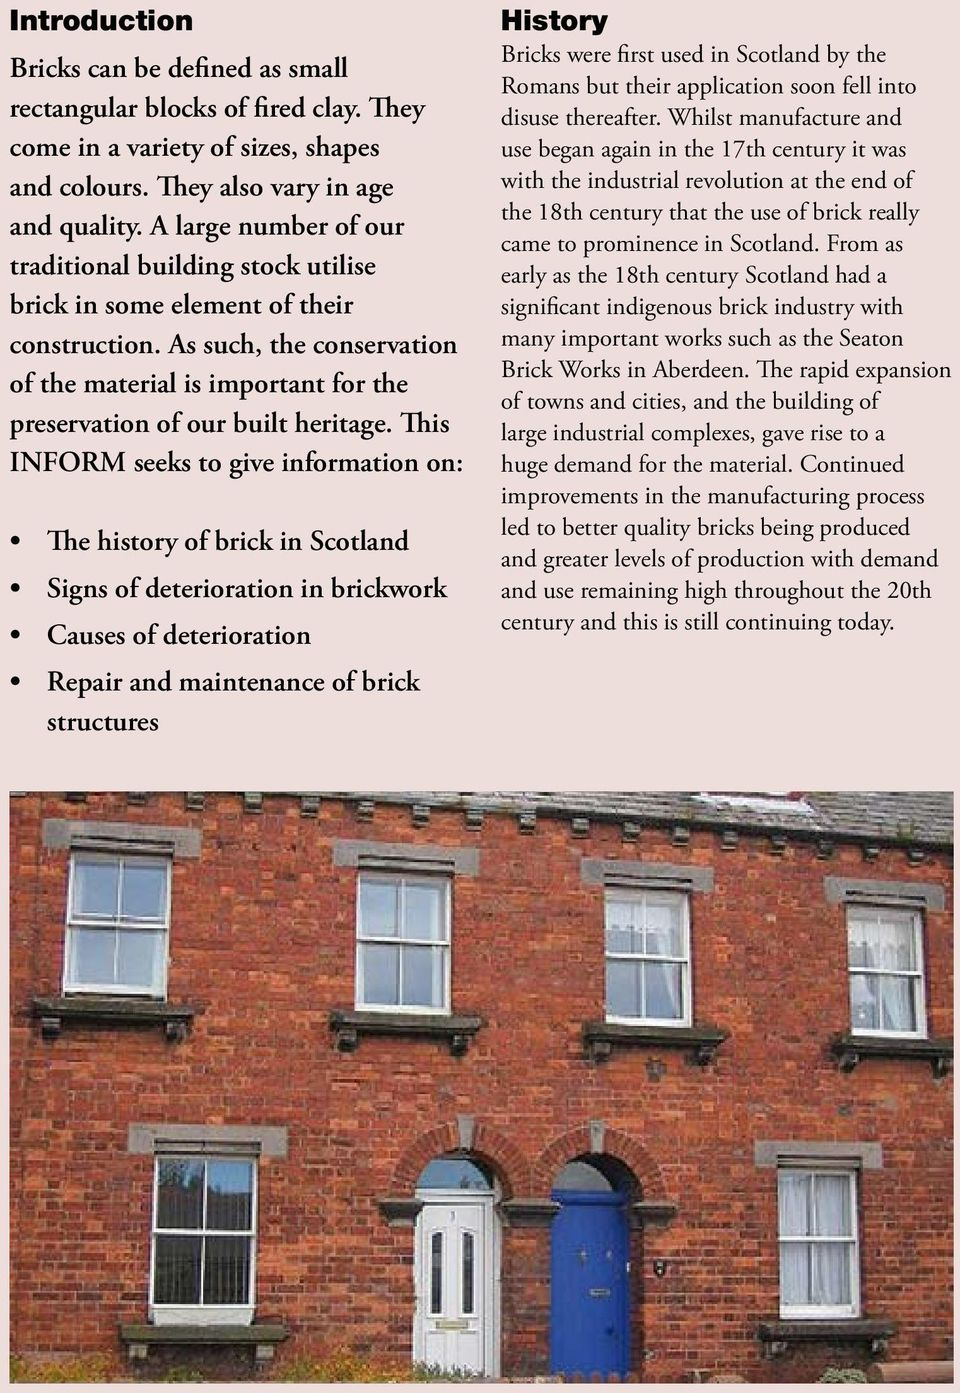 This INFORM seeks to give information on: The history of brick in Scotland Signs of deterioration in brickwork Causes of deterioration Repair and maintenance of brick structures History Bricks were